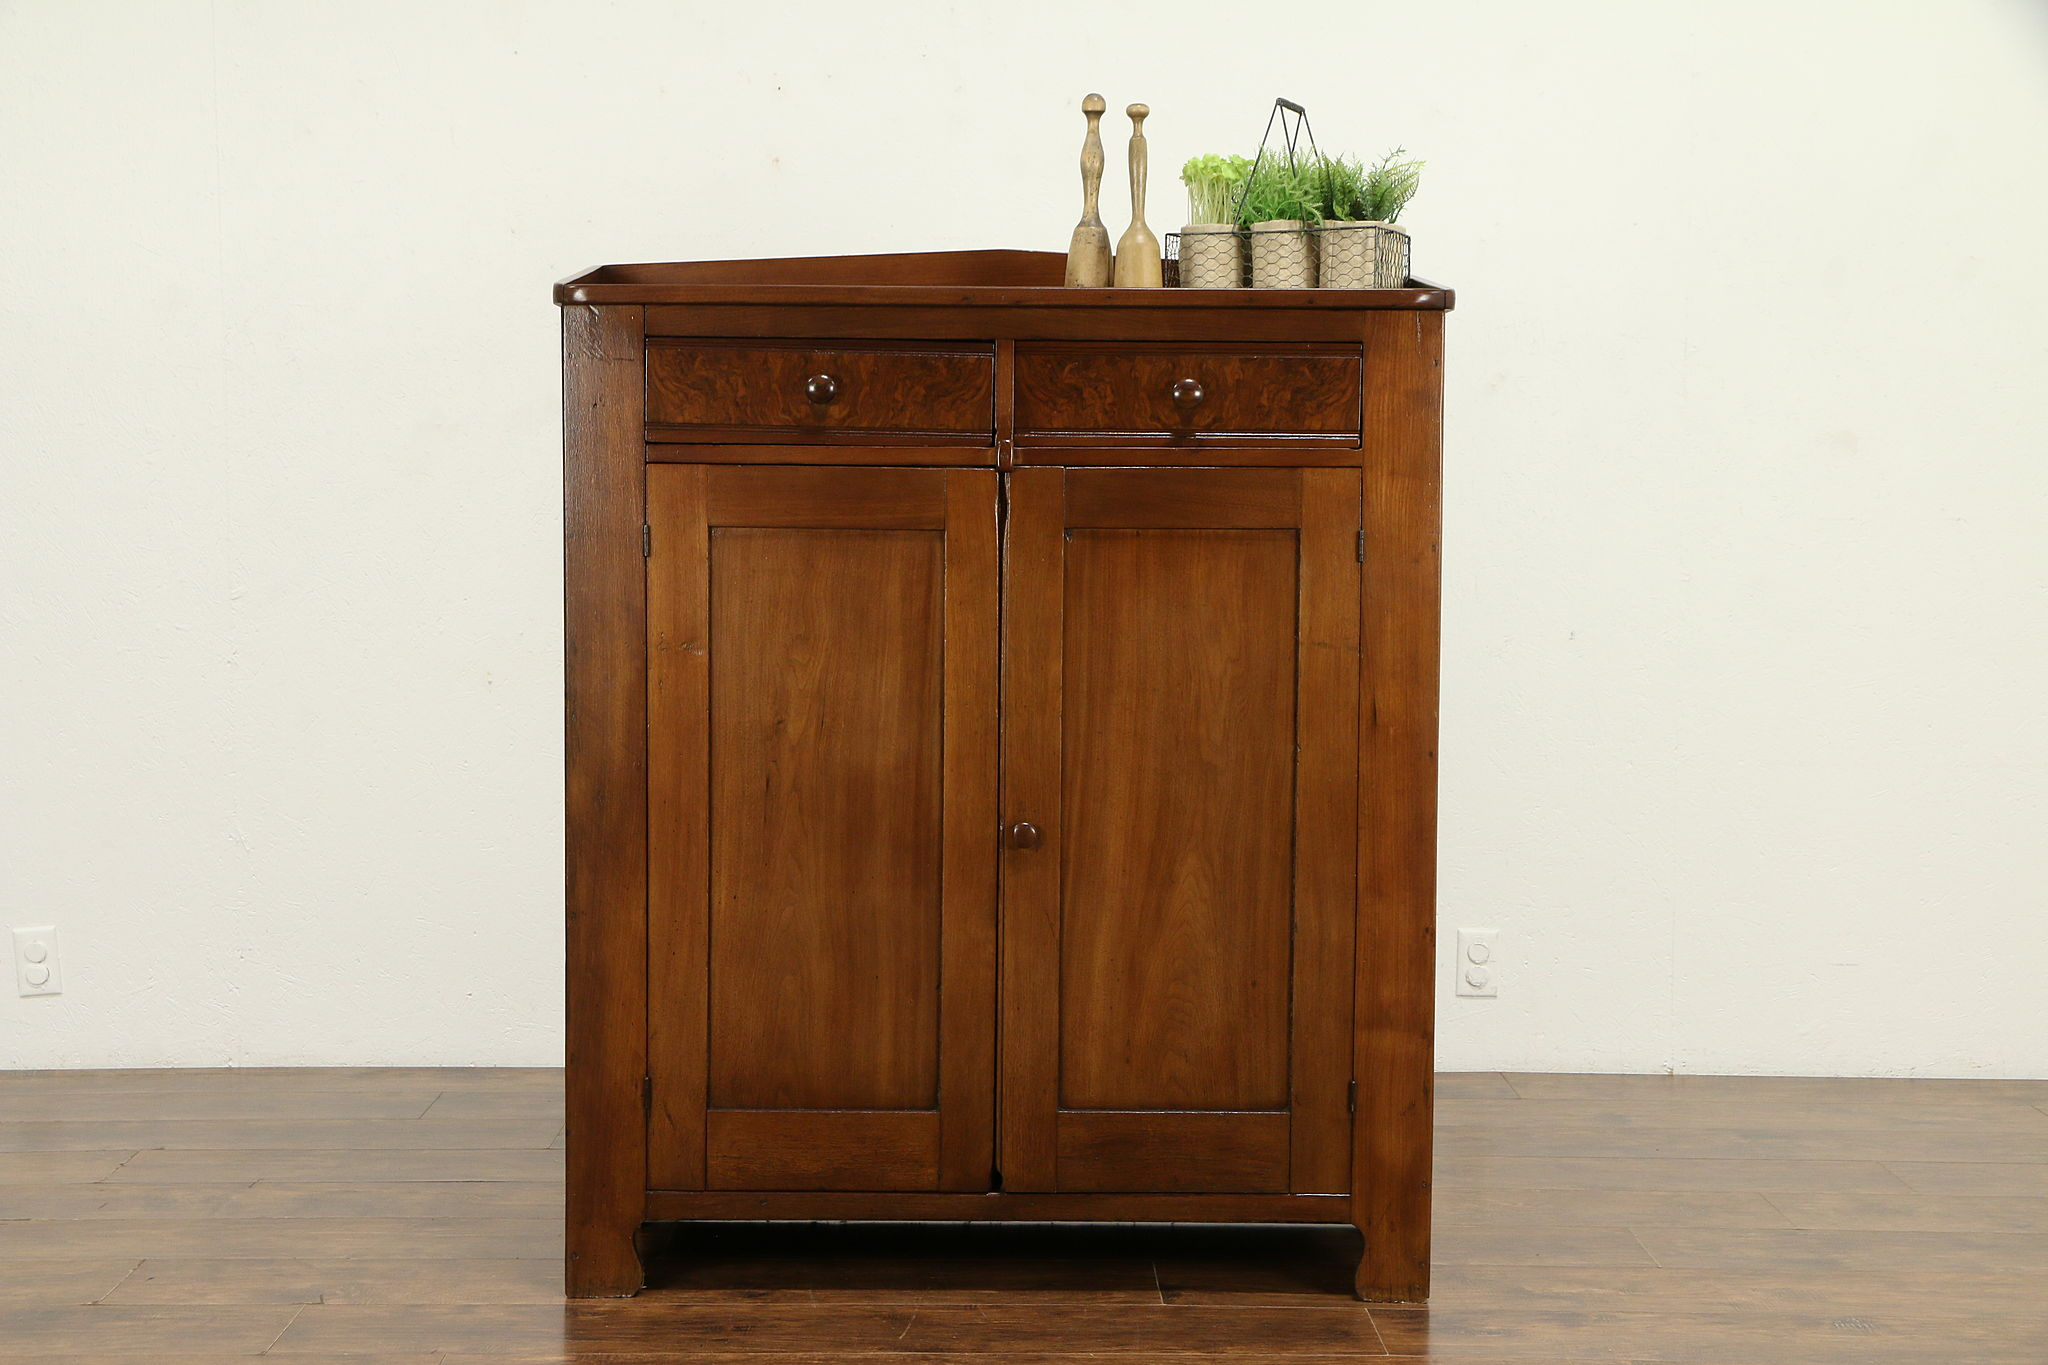 Country Walnut Antique 1860 Kitchen Pantry Cabinet Or Jelly Cupboard 32576